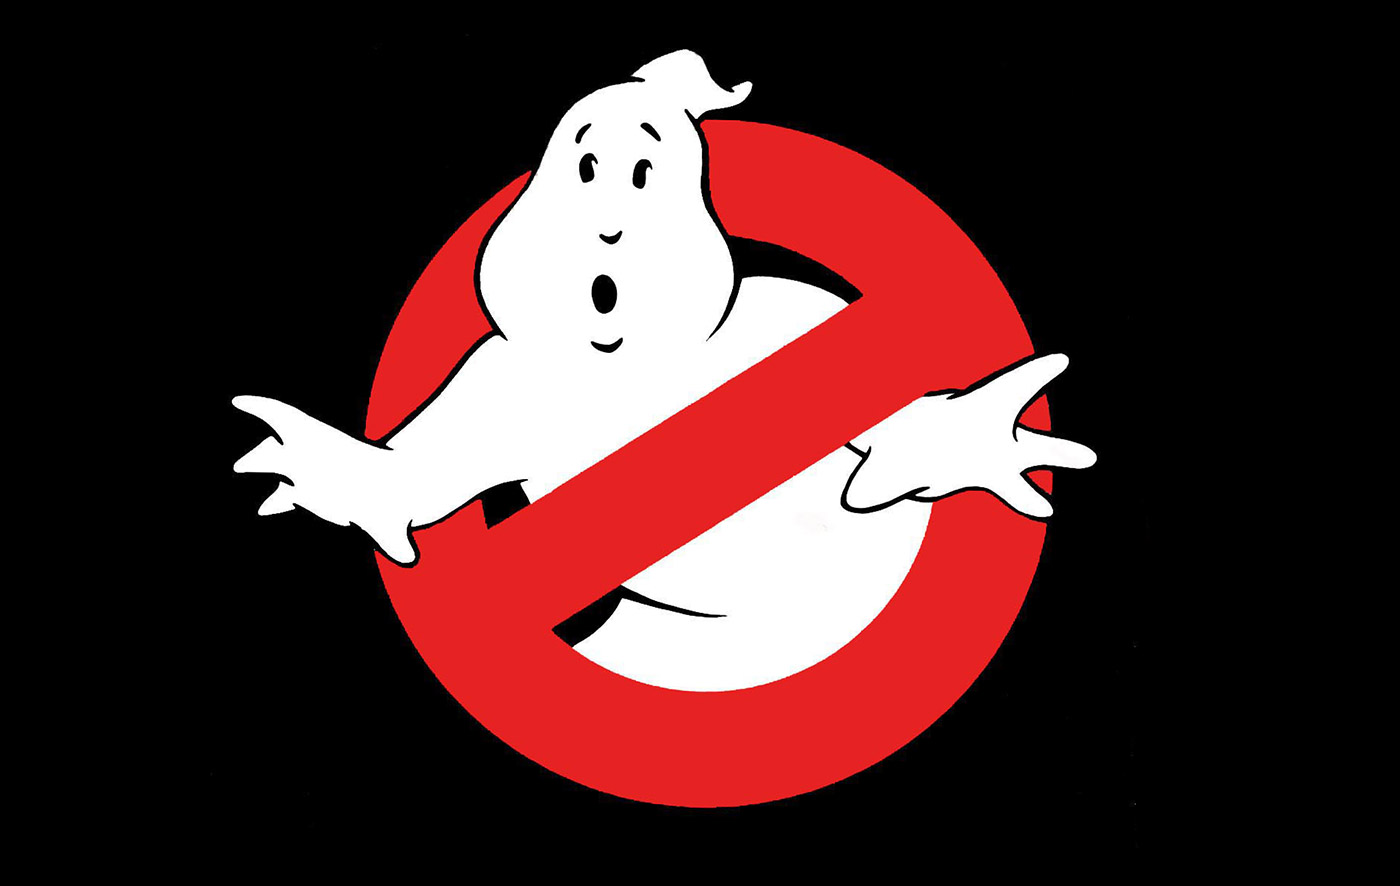 Ghostbusters logo on black